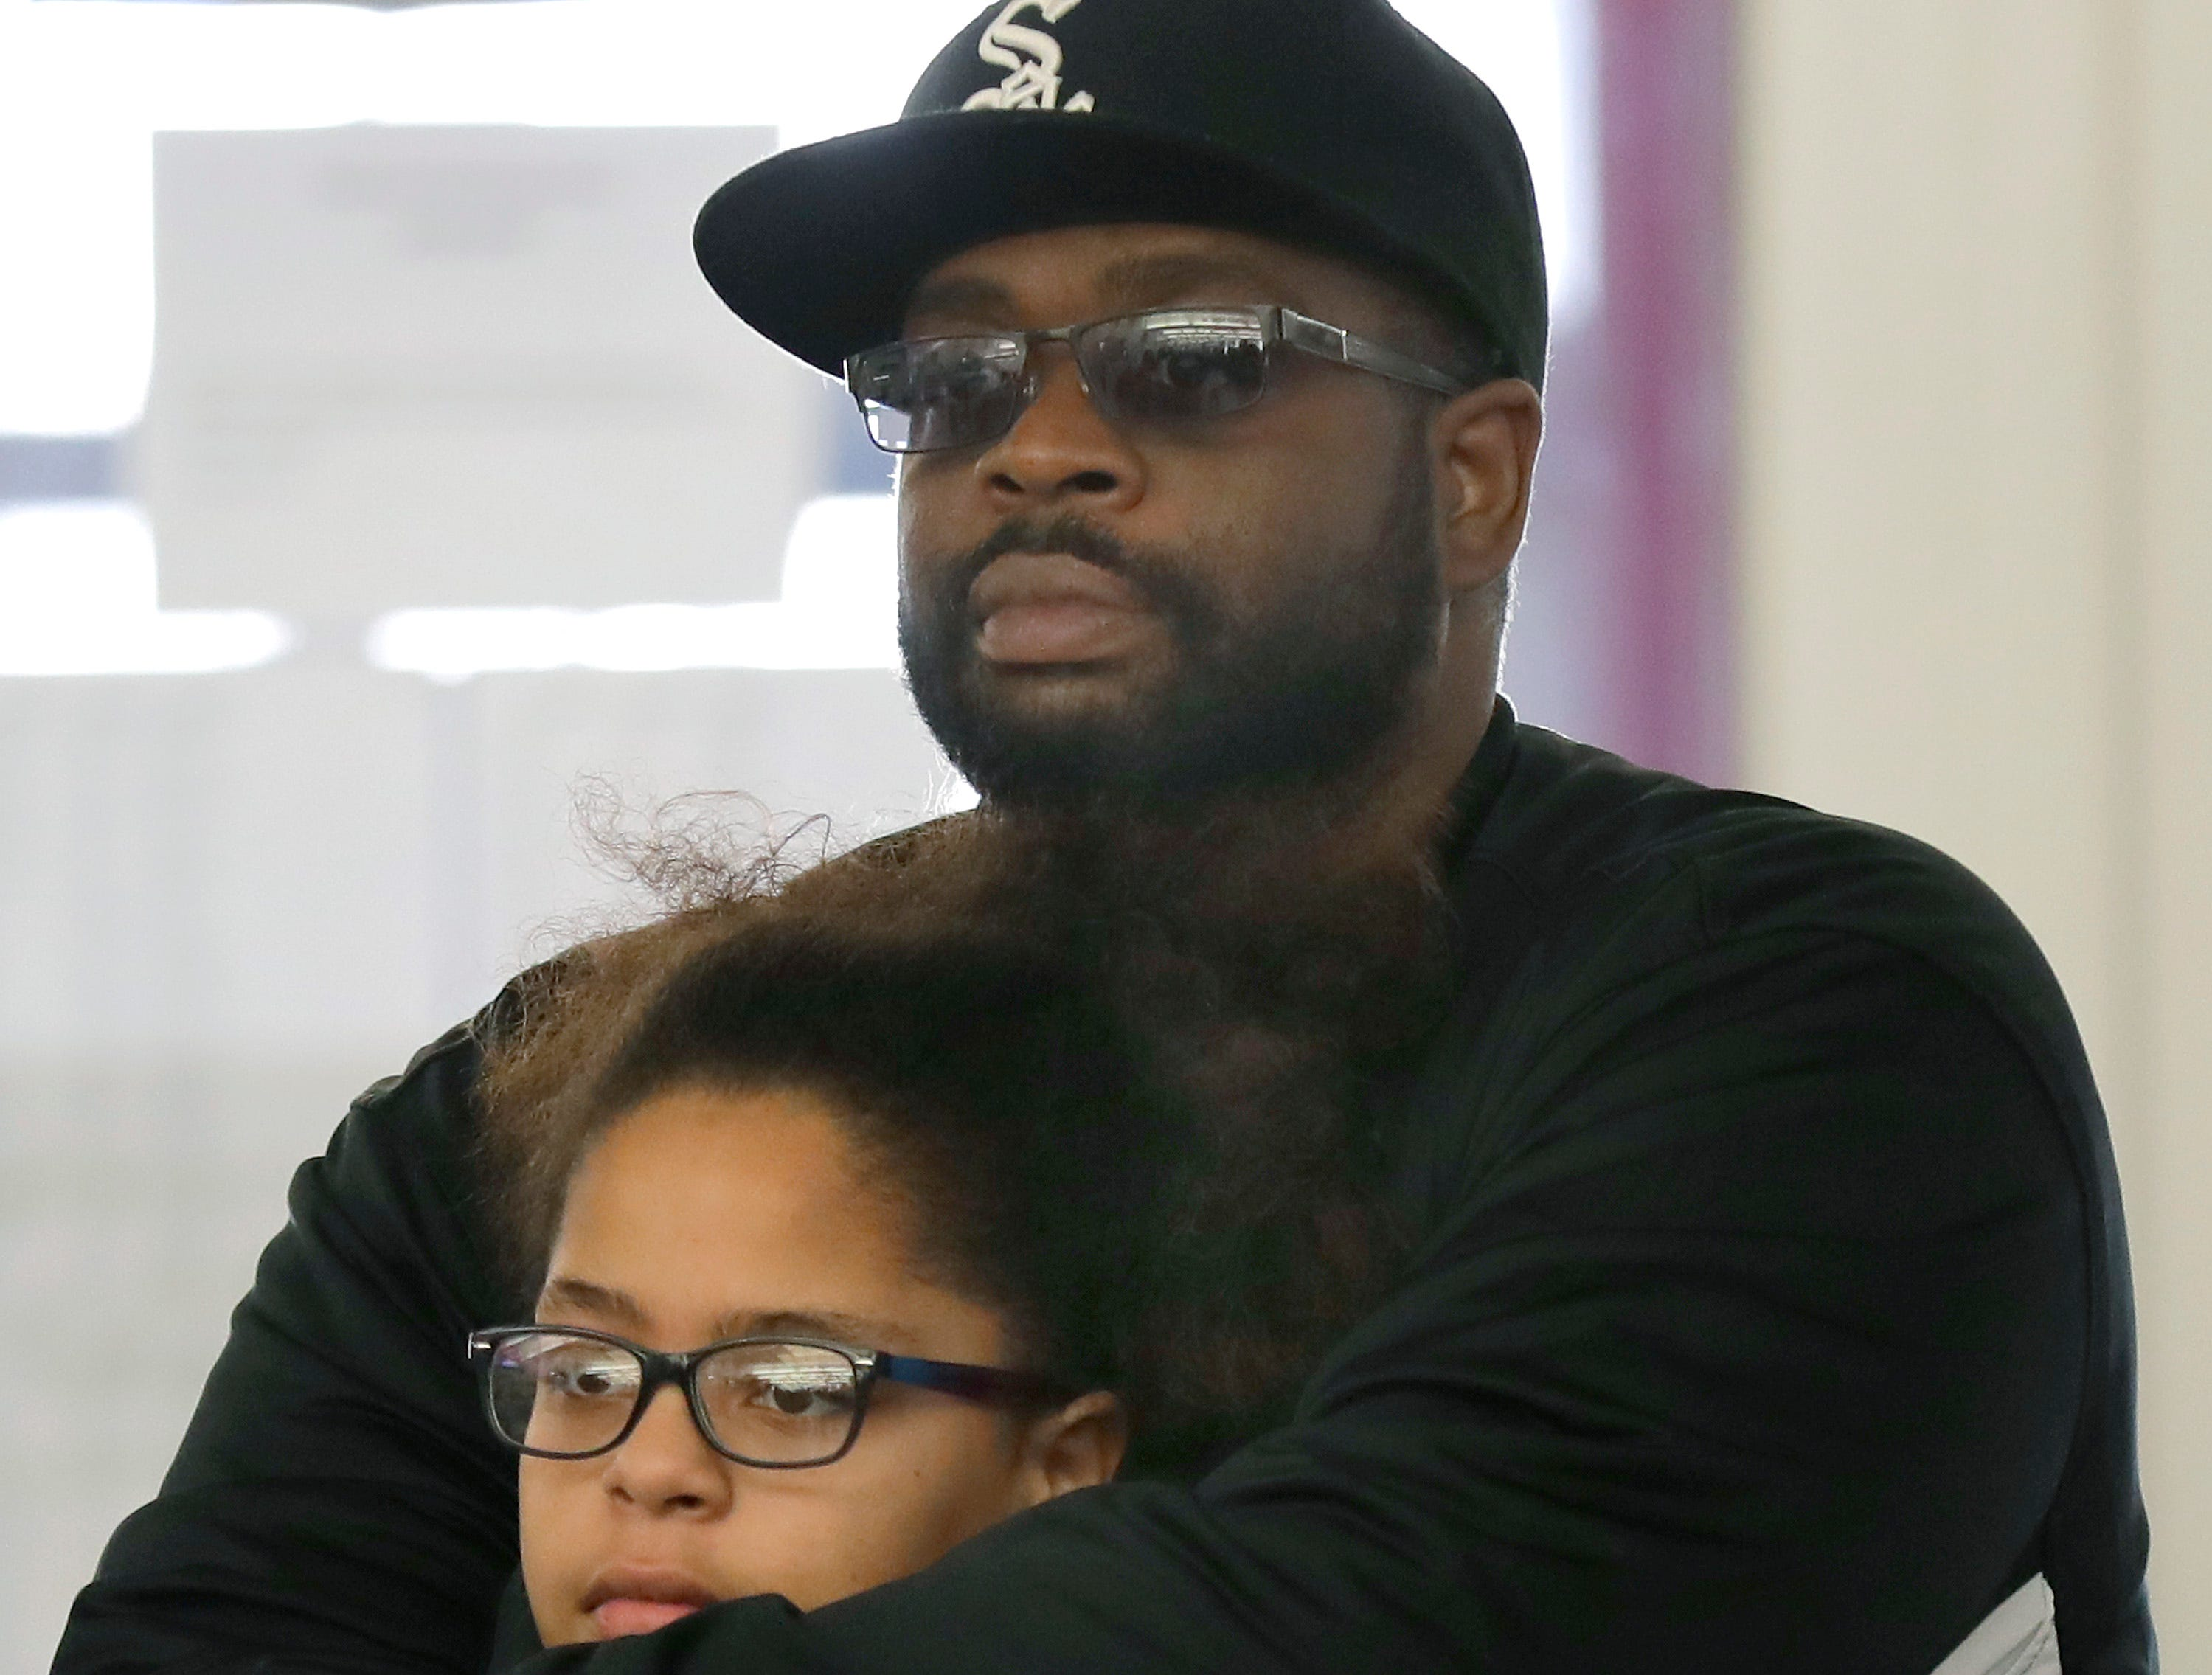 Montell Right holds his daughter Nivea Bushar while watching a performance during the first annual MLK Community Day of Service celebration on Monday, January 21, 2019, at Appleton East High School in Appleton, Wis.